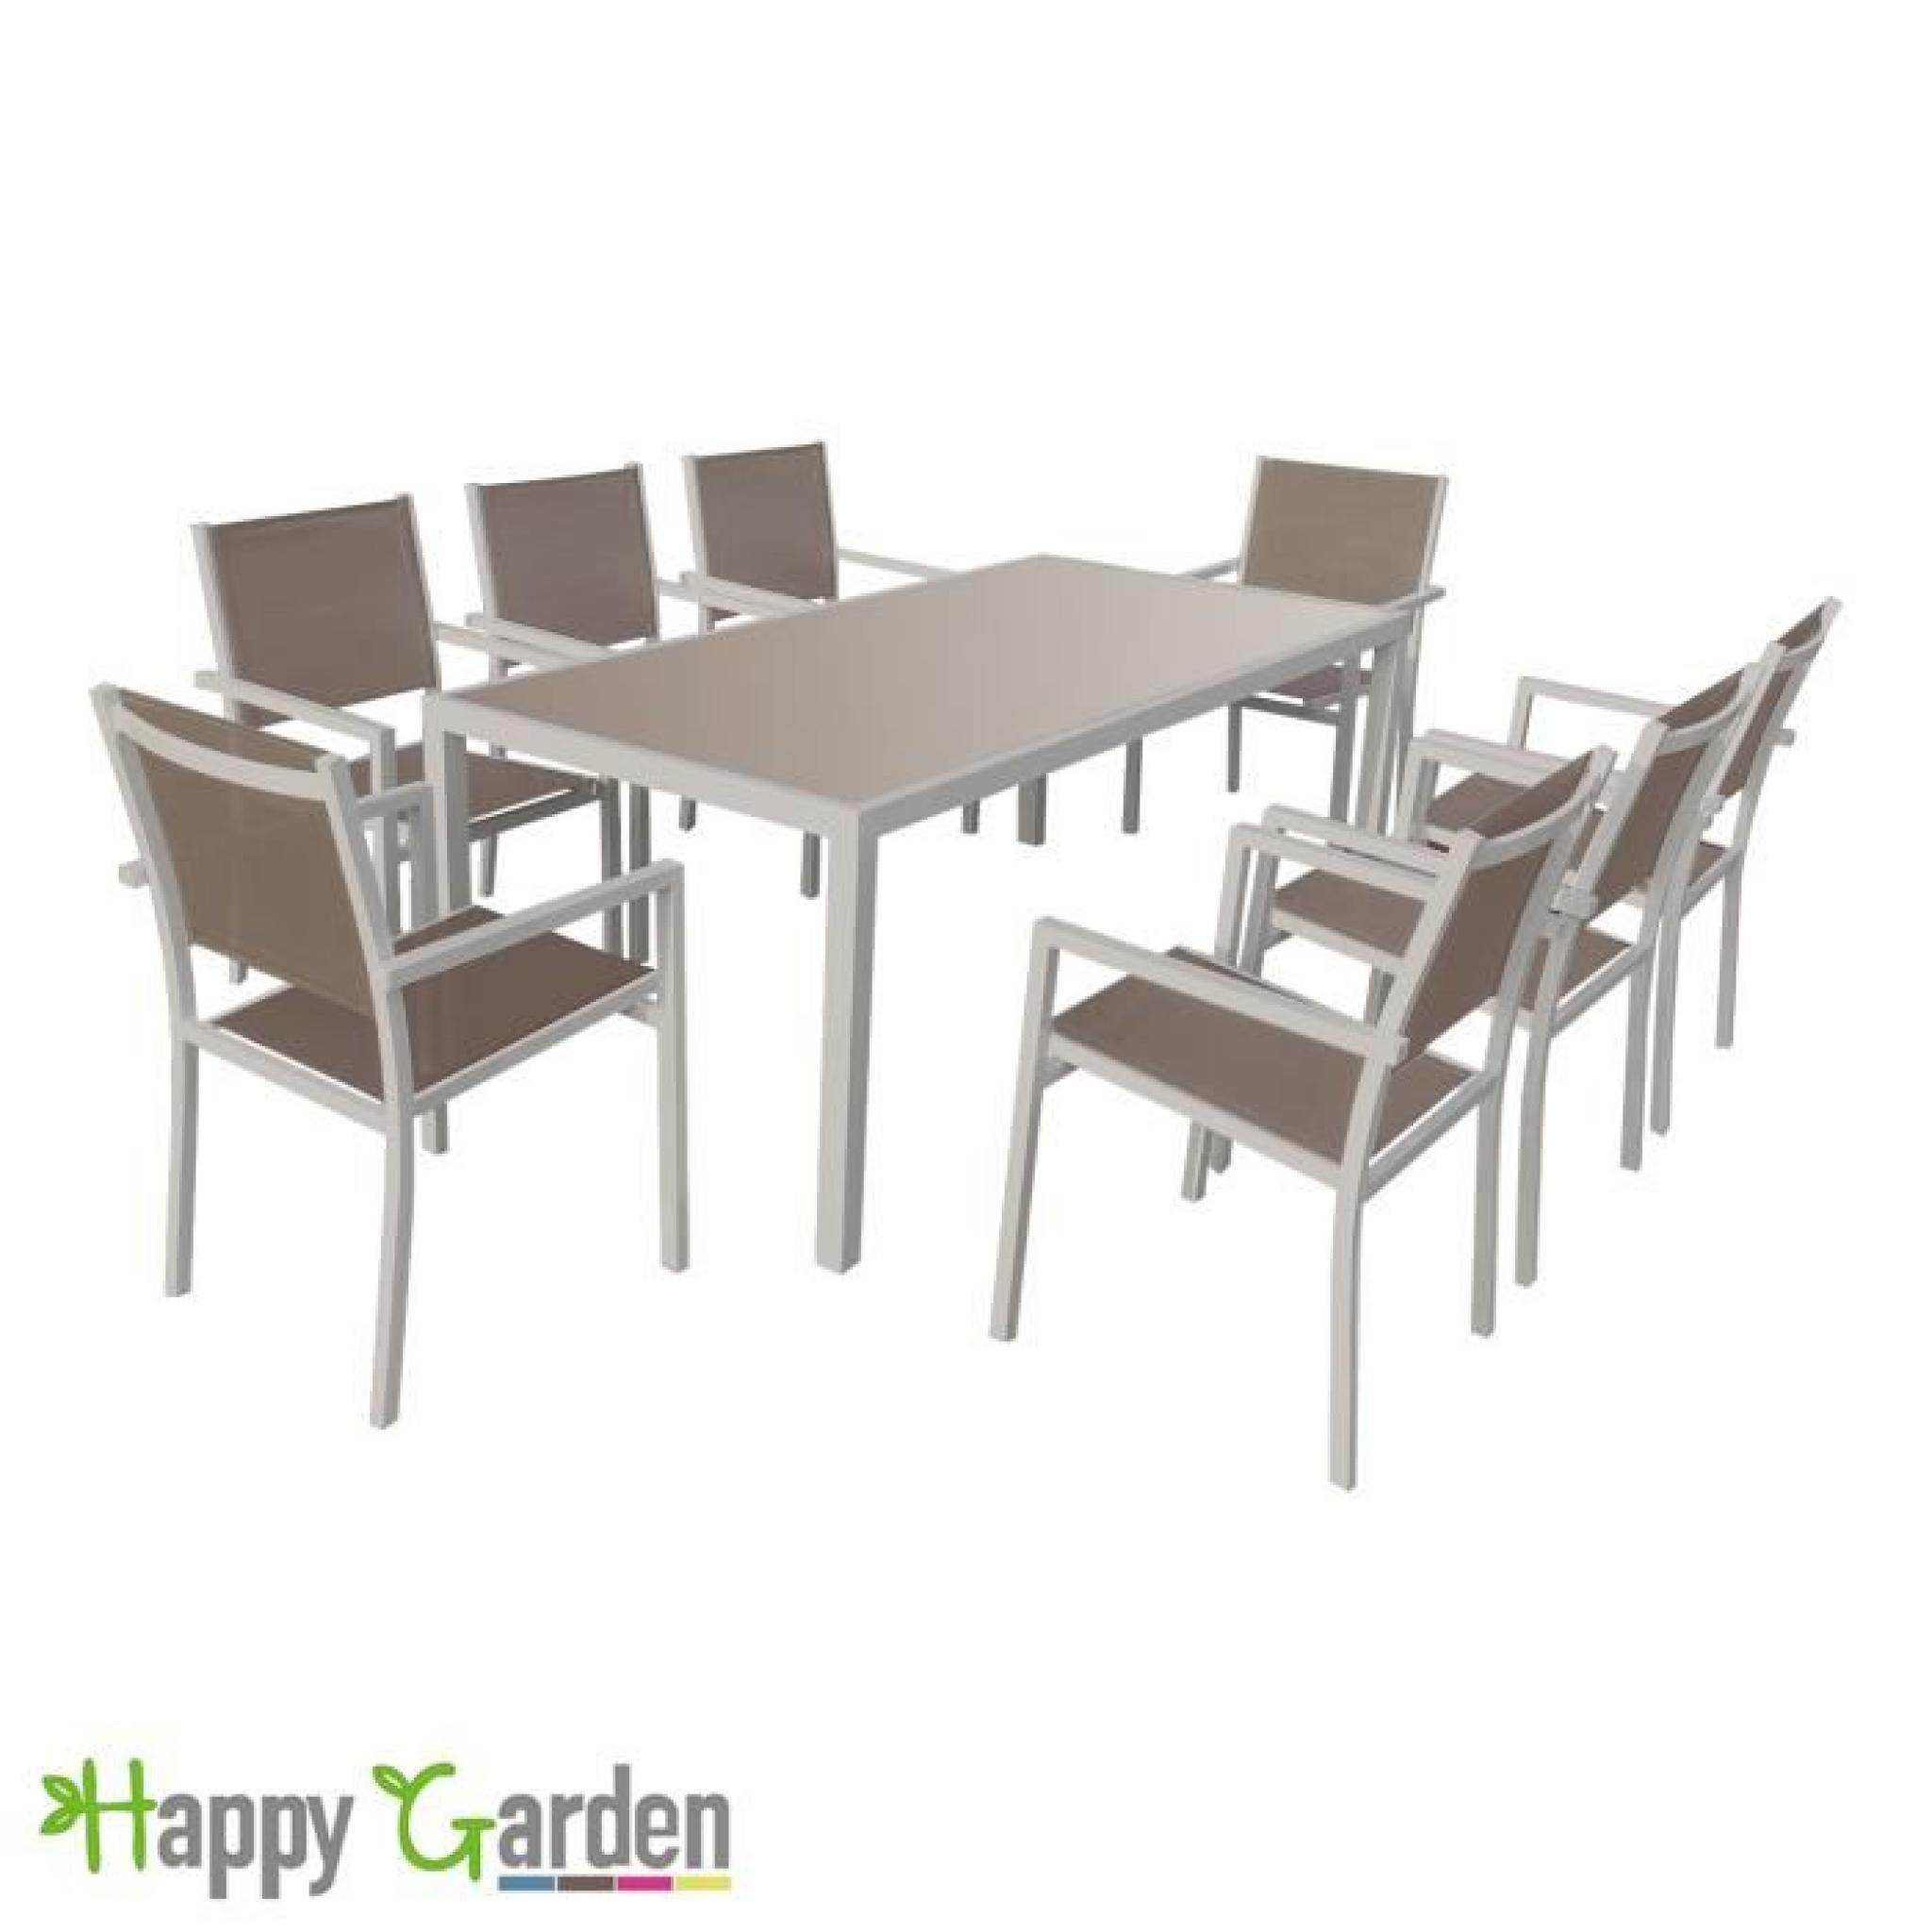 Salon de jardin bari en textil ne taupe 8 places aluminium taupe achat vente salon de jardin for Salon de jardin 8 places